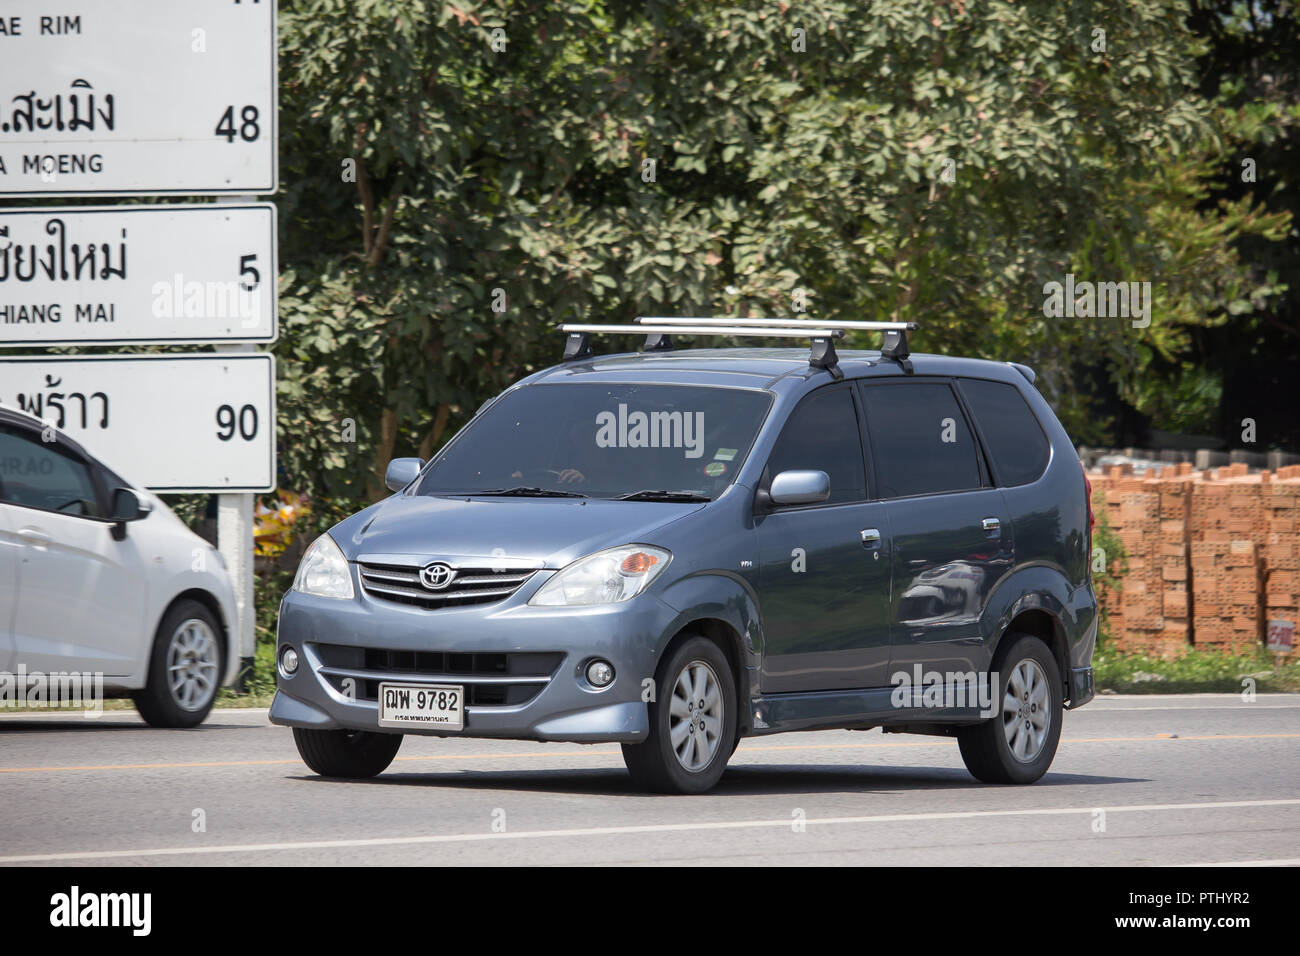 Avanza Stock Photos Images Alamy 1 Roof Rack Chiangmai Thailand September 17 2018 Private Toyota Car Mini Suv